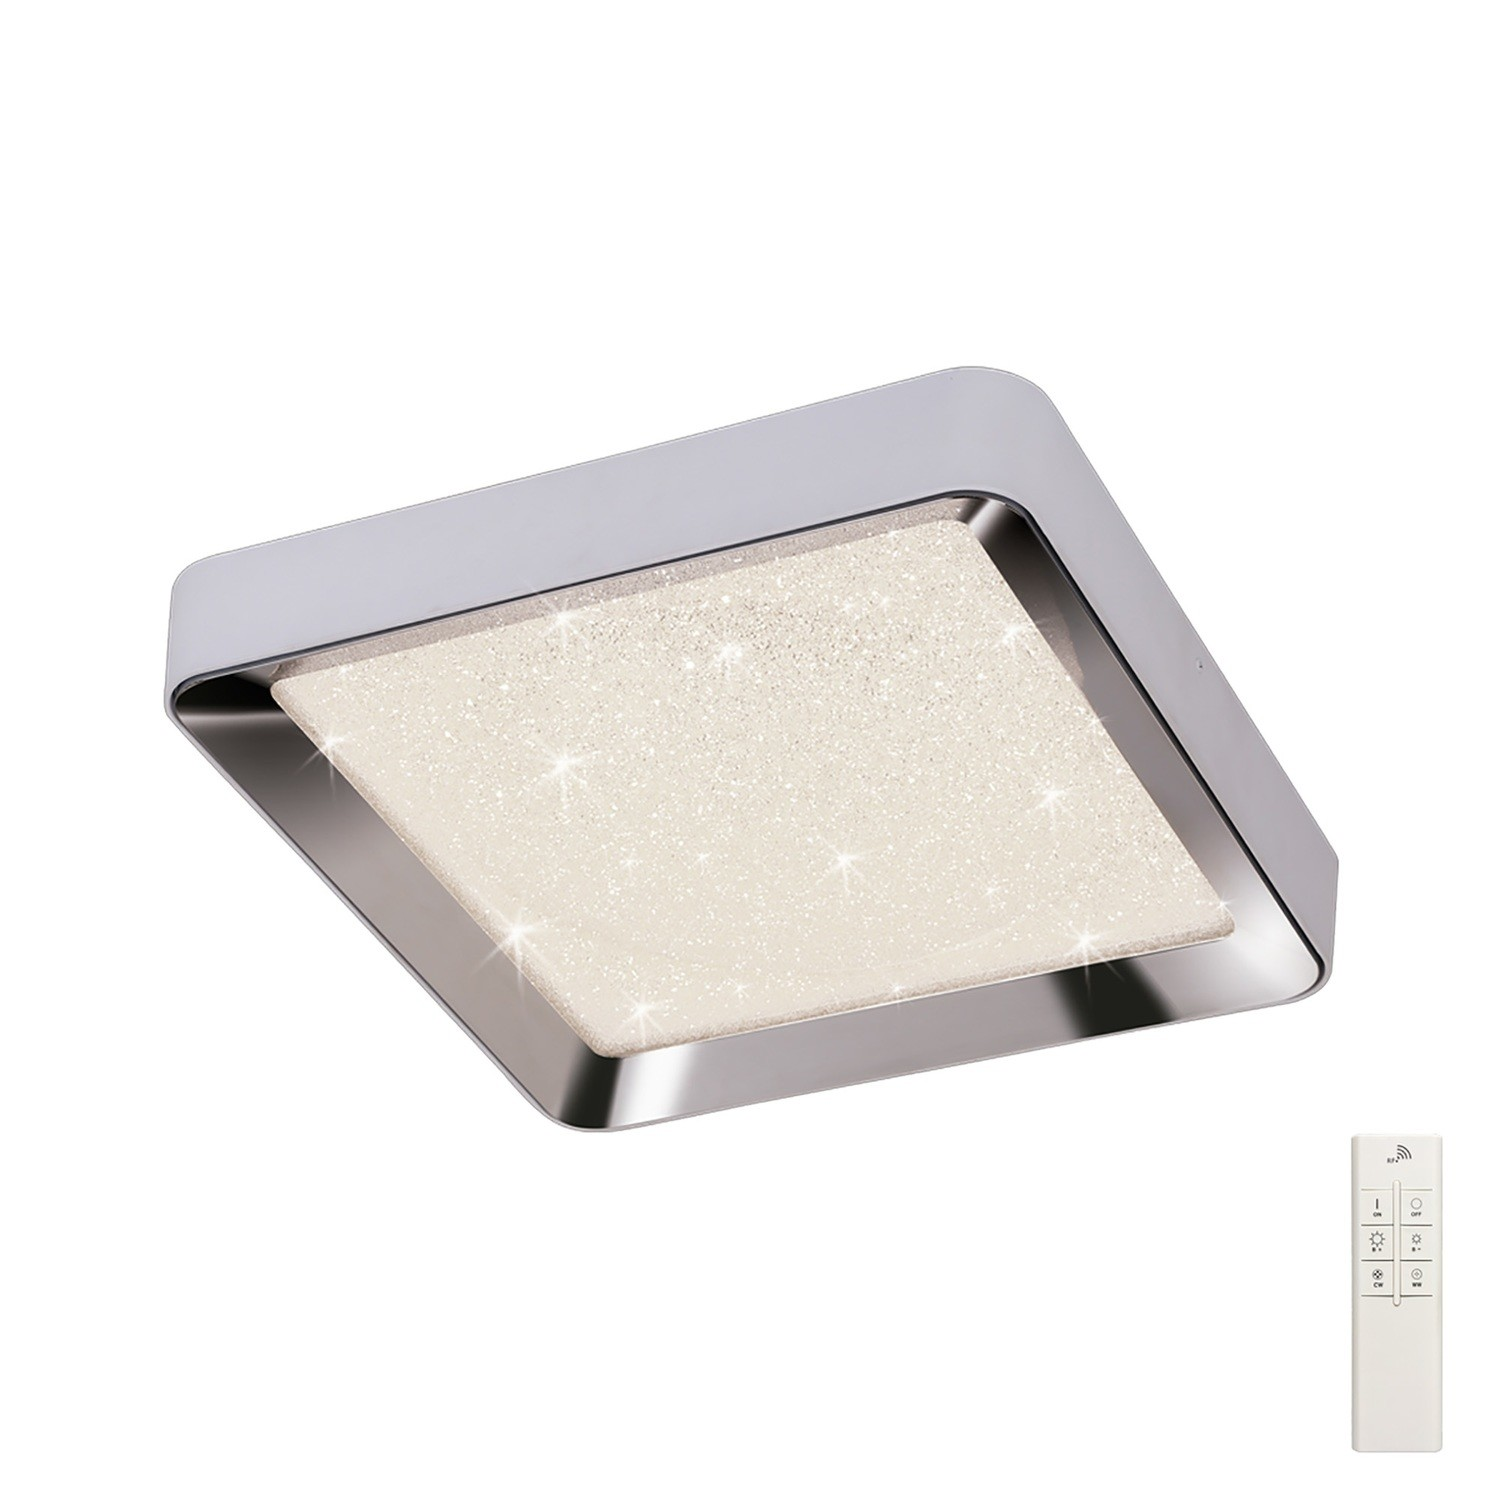 Male Flush 65cm Square 40W LED 3000-6500K Tuneable, 3200lm, Remote Control Chrome/ Acrylic, 3yrs Warranty